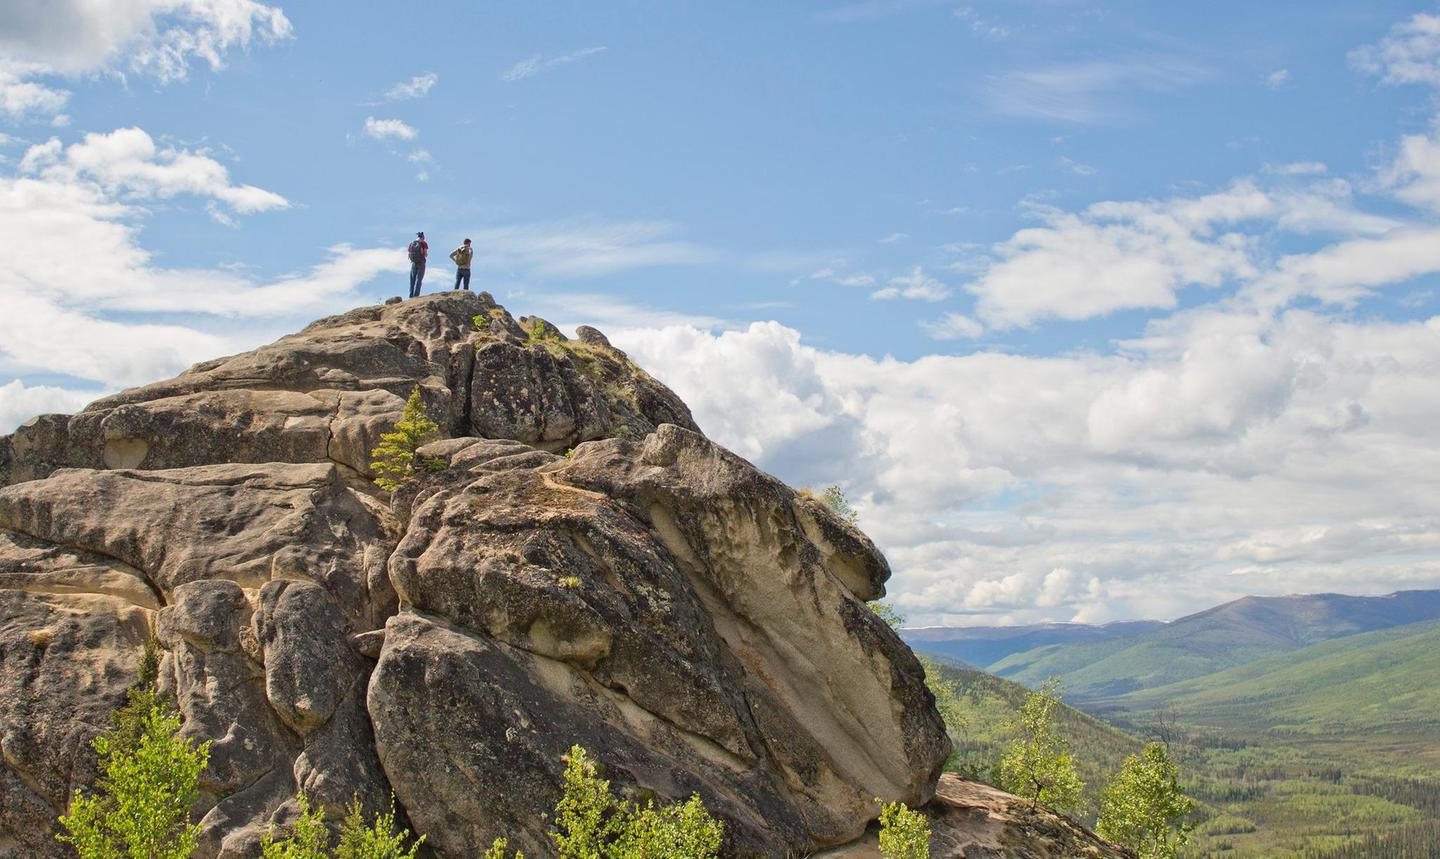 Hikers on Angel RocksHikers on top of Angel Rocks near Fairbanks look out across the landscape of Chena River State Recreation Area